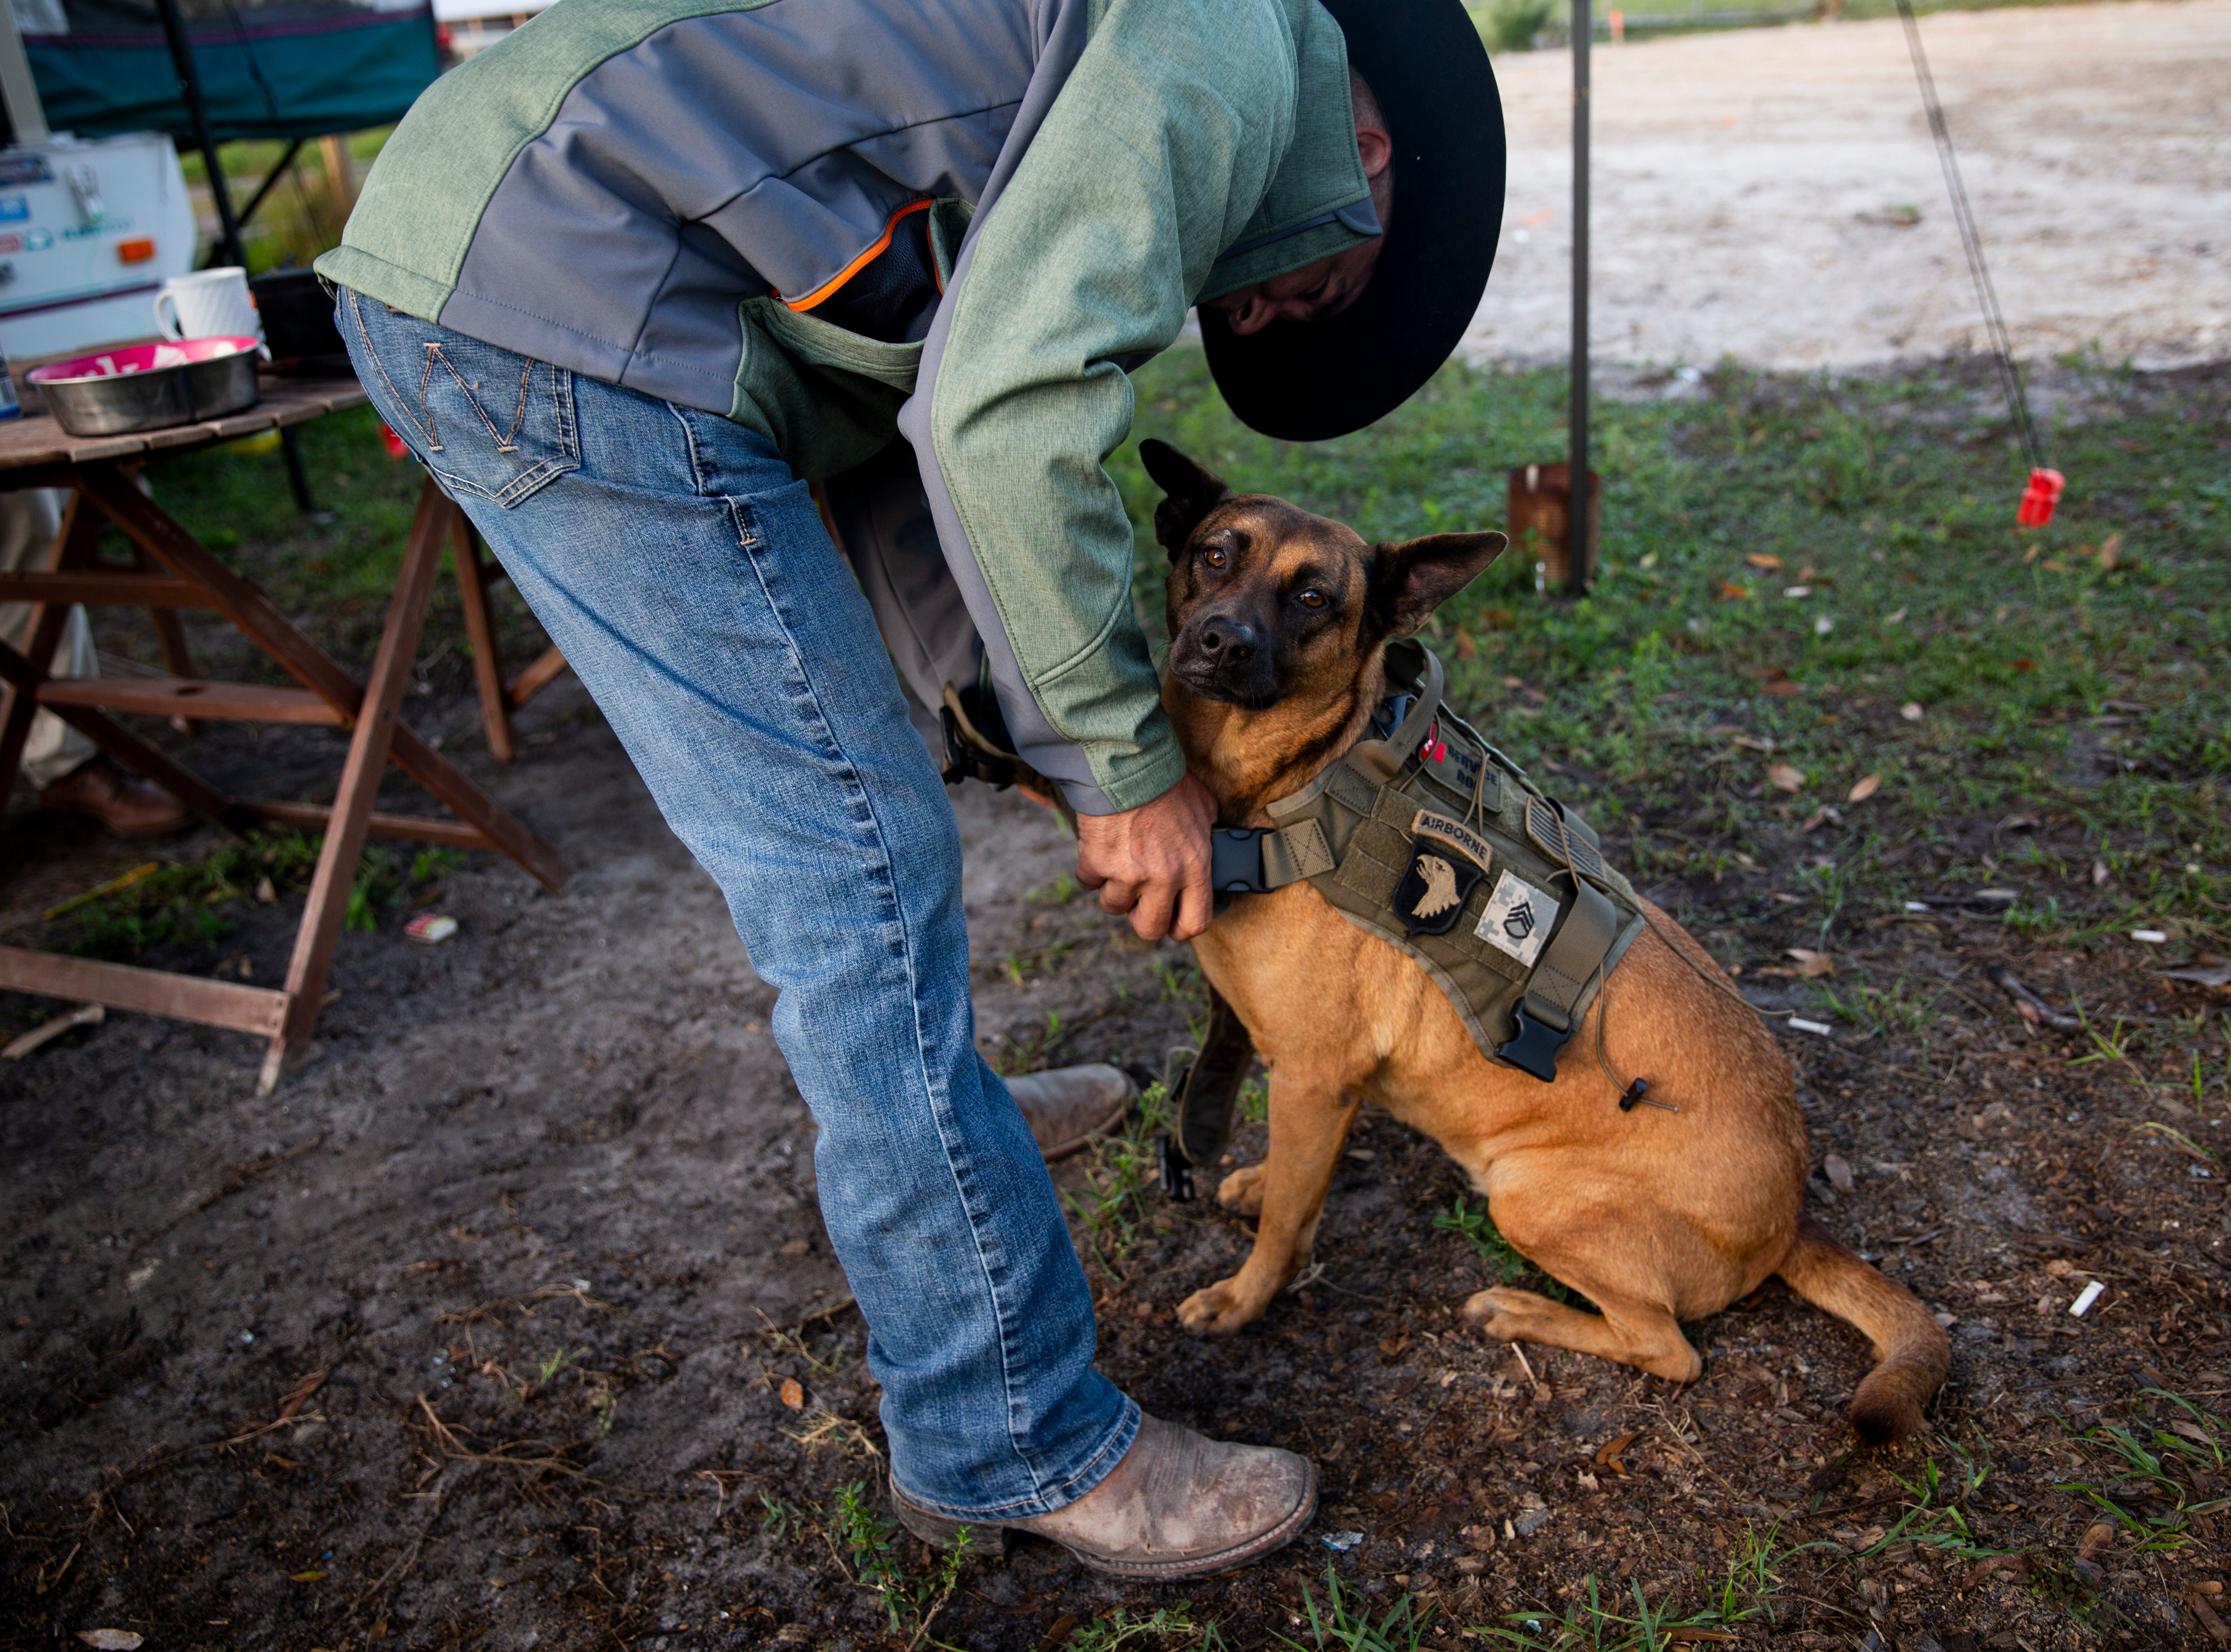 Steven DePalma puts a vest on his service dog, Mia, on Friday, Dec. 7, 2018, at his ranch in Fort Myers. DePalma is an Army veteran, and Mia helps him by reminding him to take his medication and waking him up from nightmares.